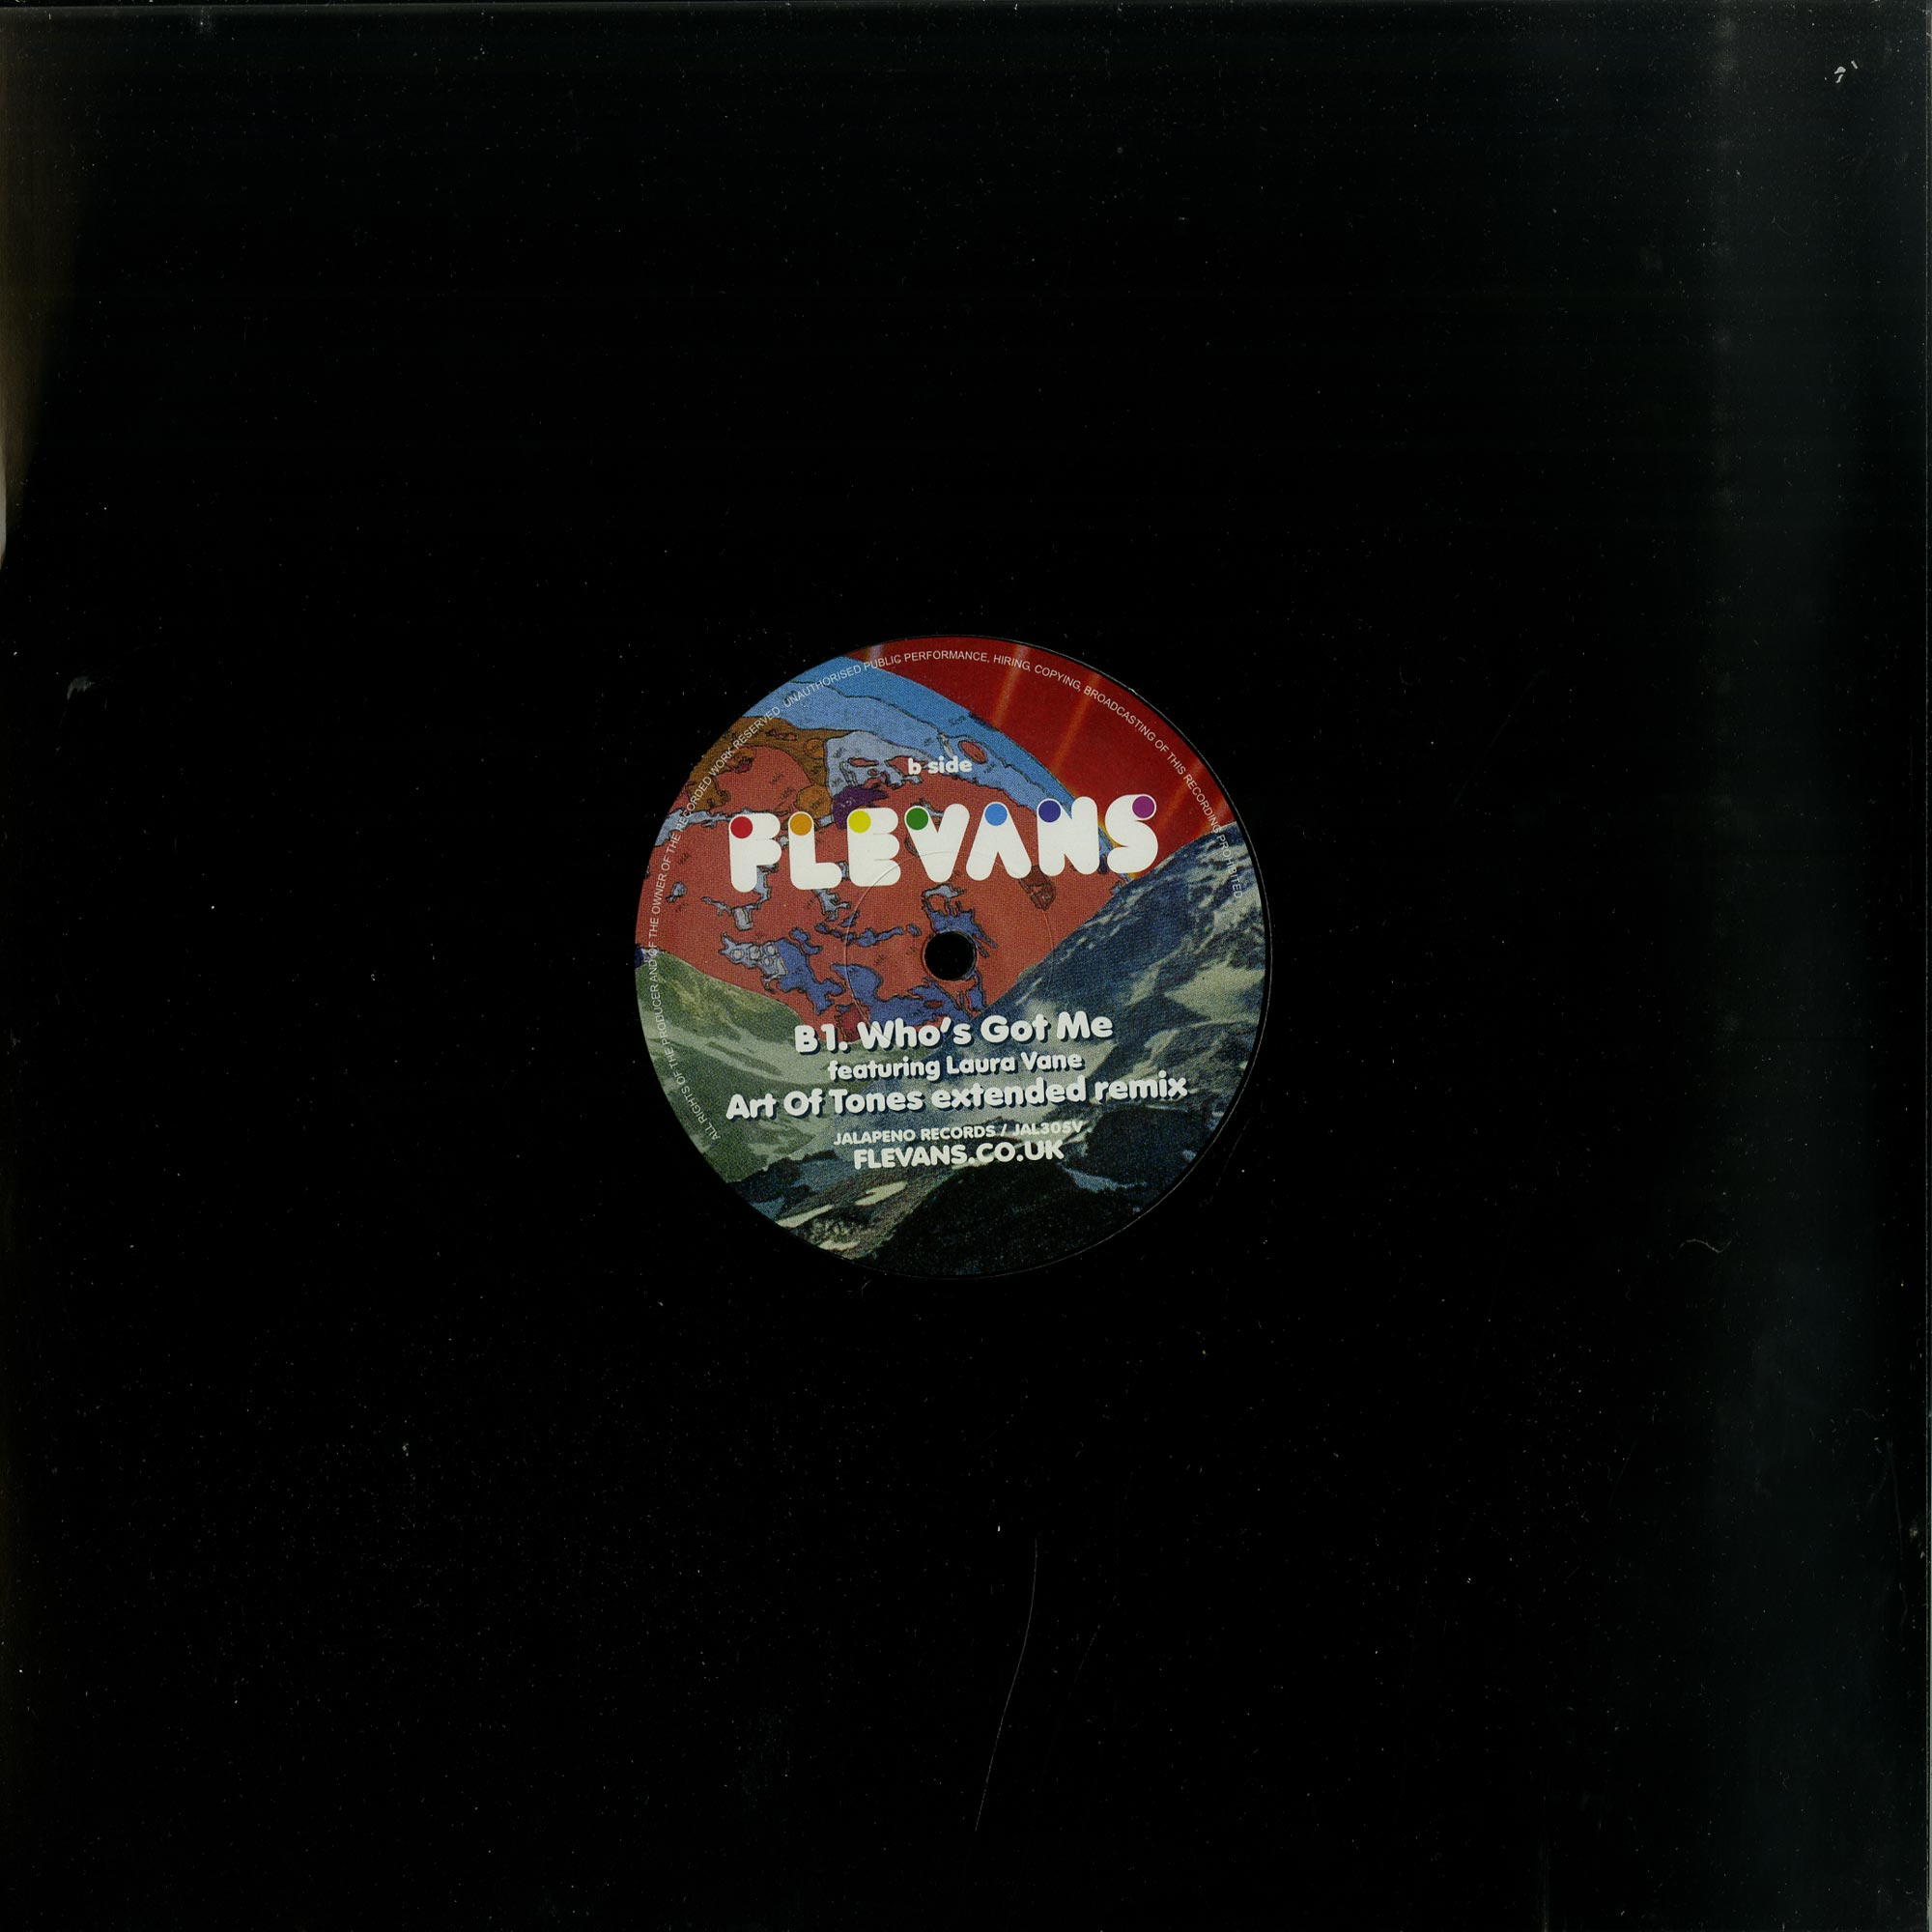 Flevans - IT JUST GOES